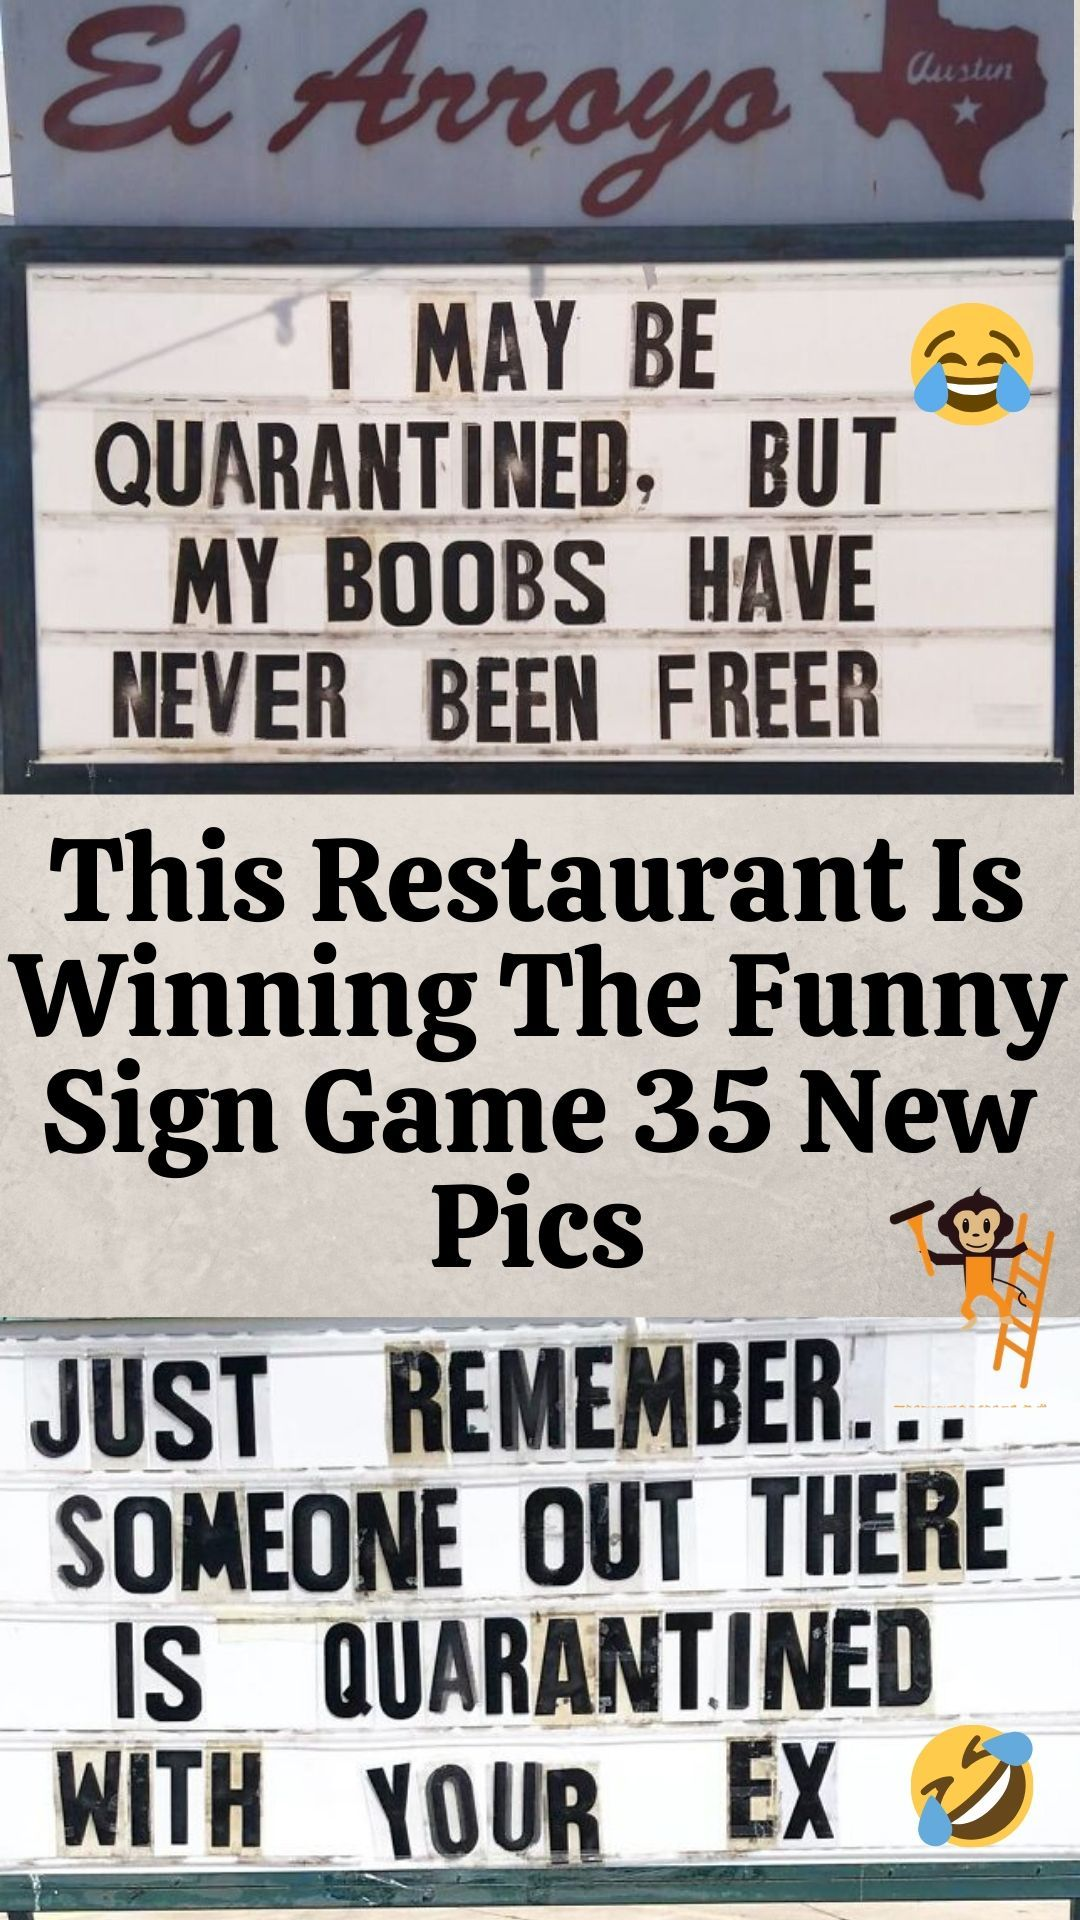 This Restaurant Is Winning The Funny Sign Game (35